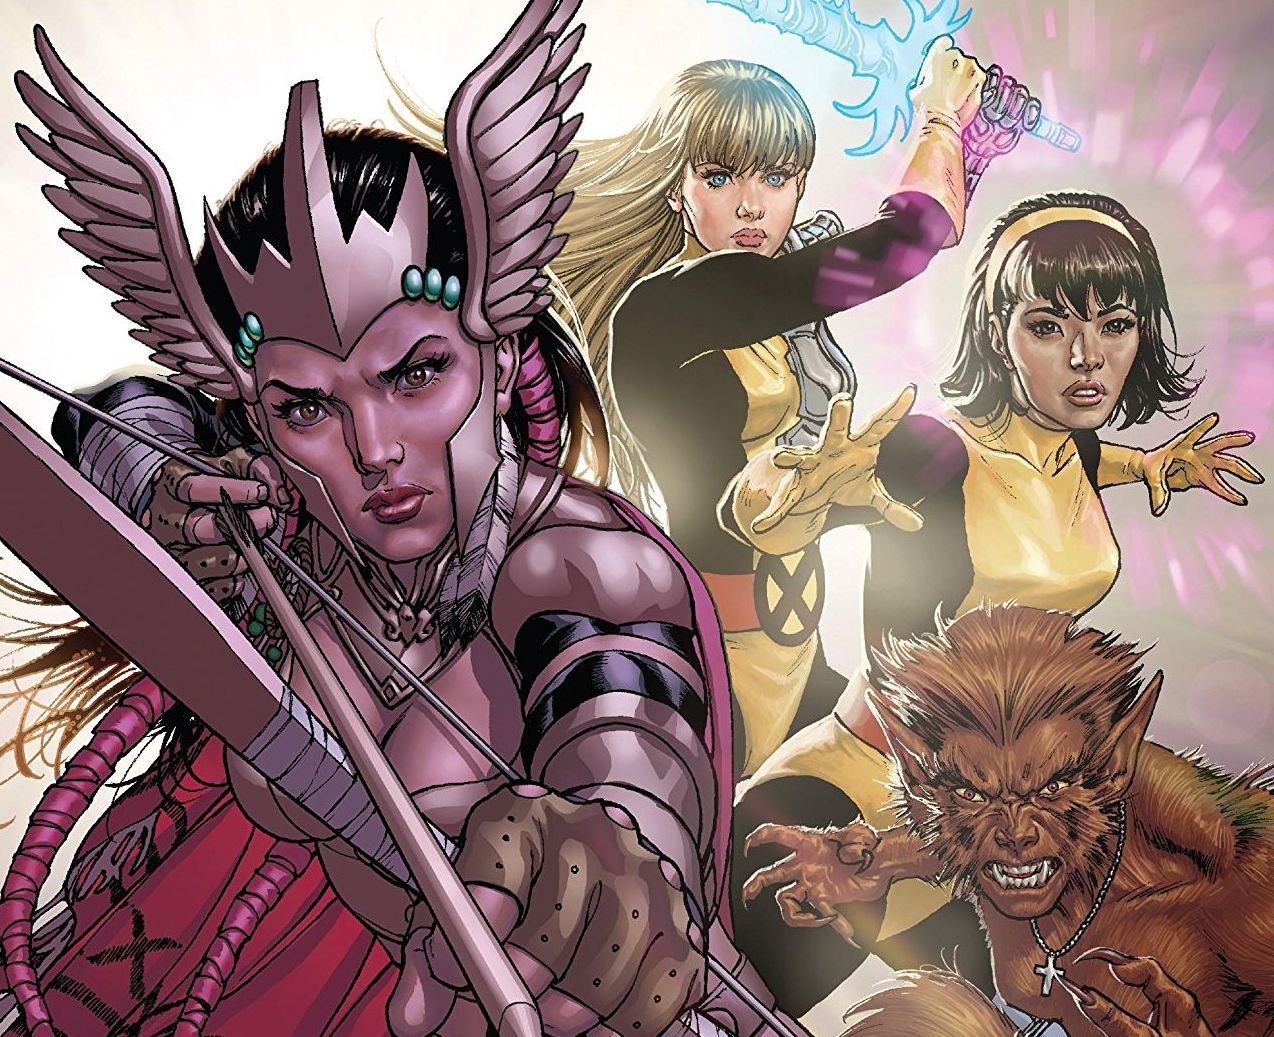 The War of the Realms: Uncanny X-Men #1 Review